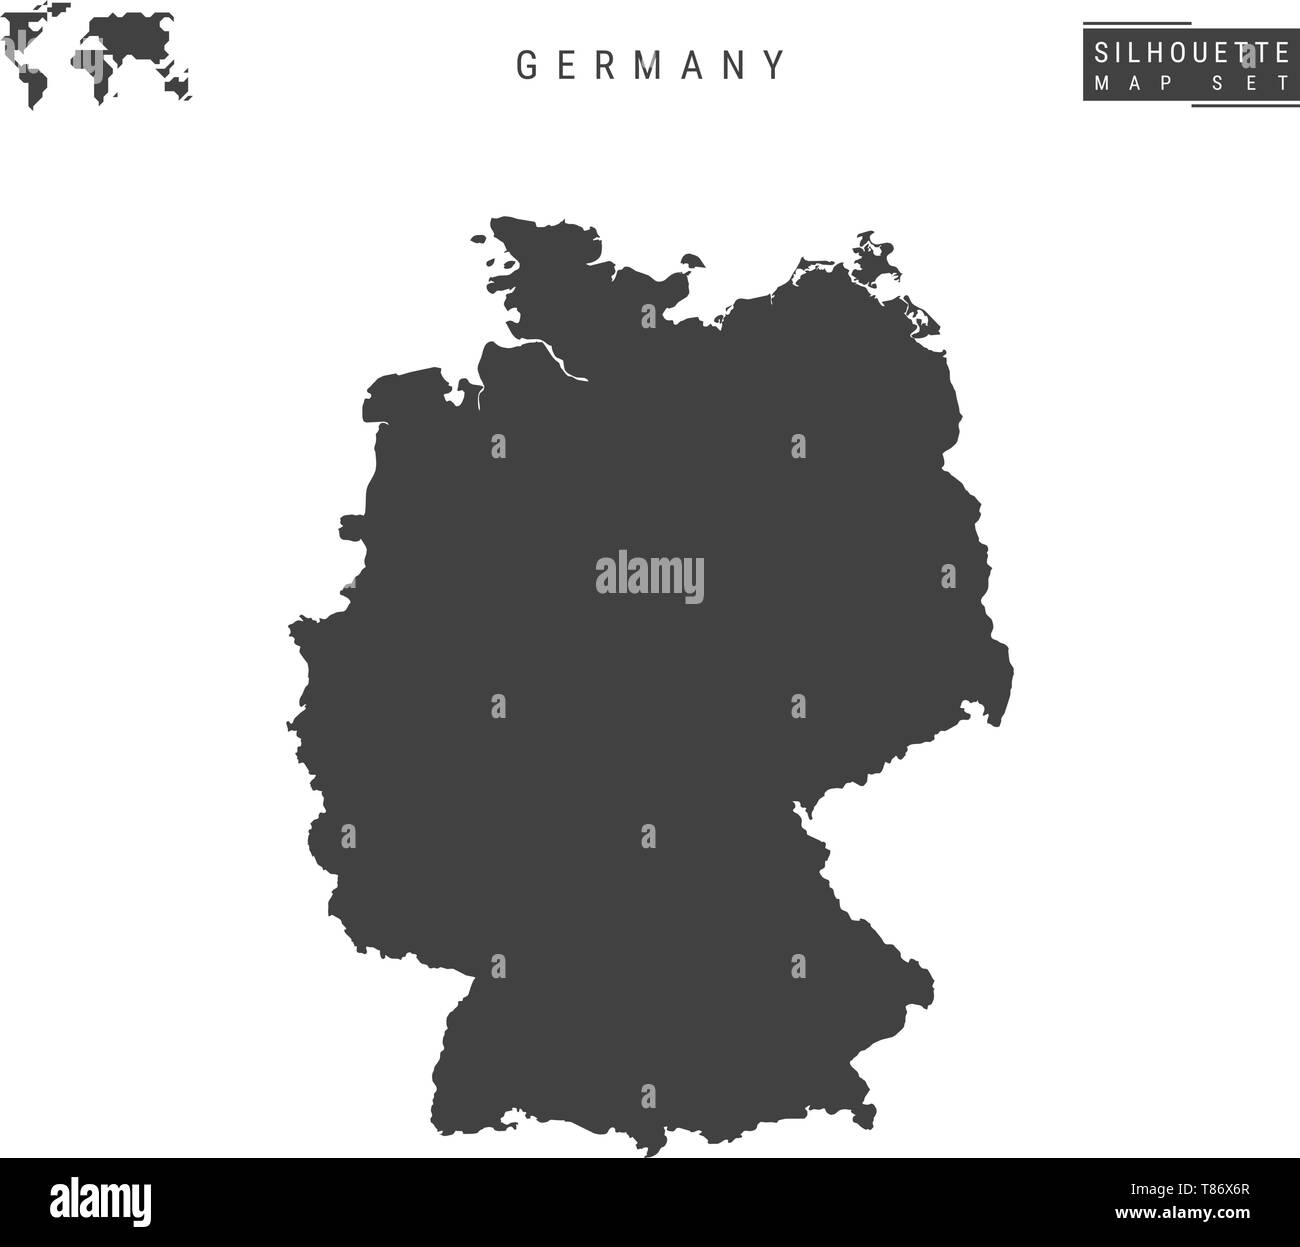 Germany Blank Vector Map Isolated on White Background. High-Detailed Black Silhouette Map of Germany. - Stock Vector